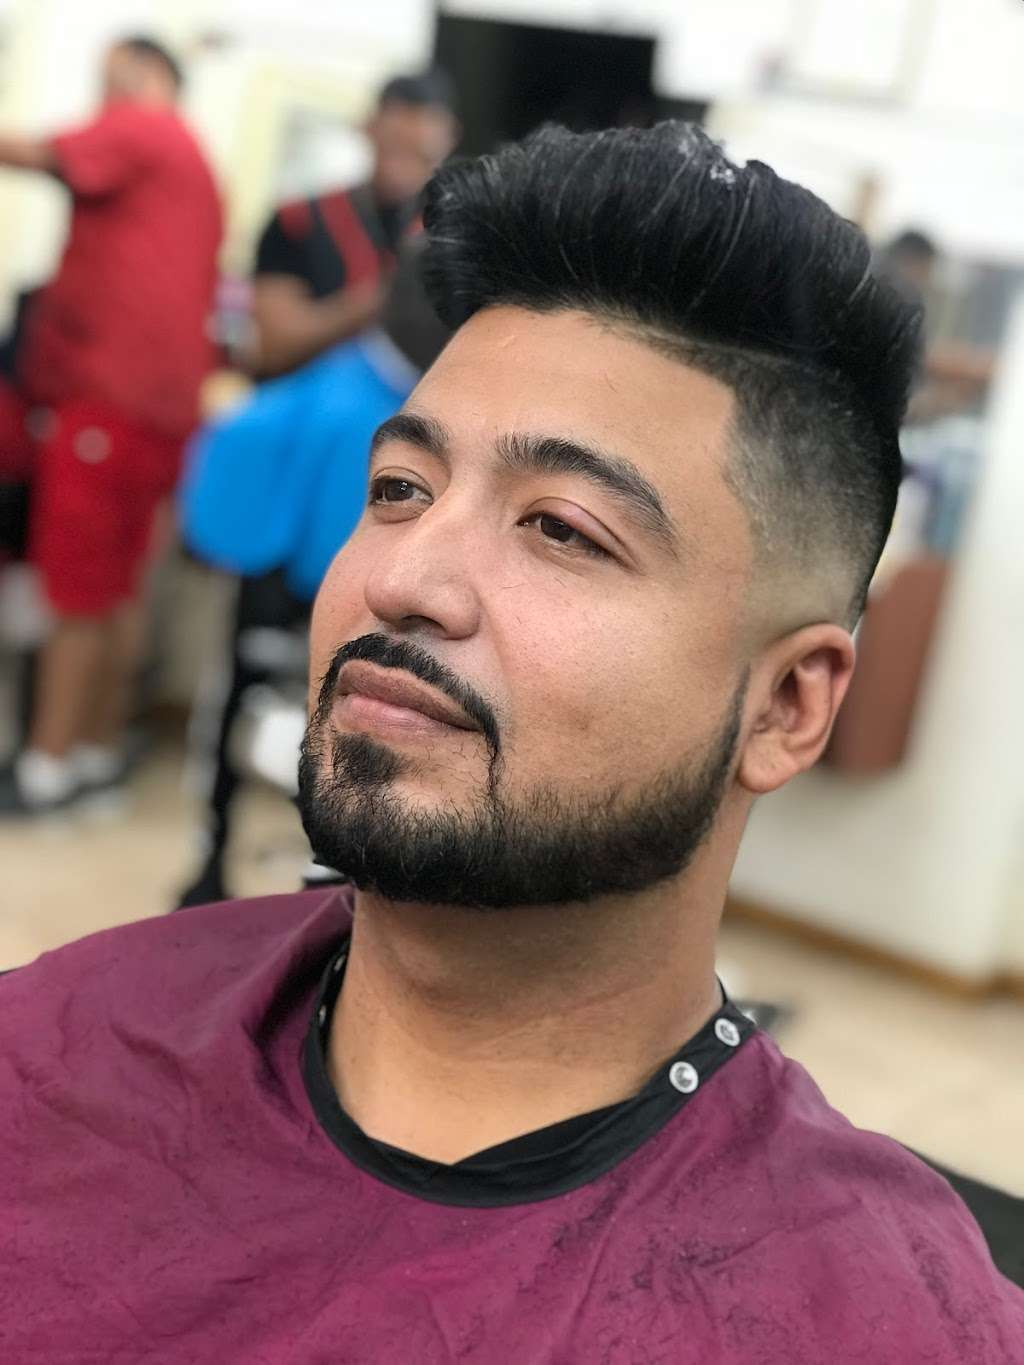 Dominican Barber Shop - hair care    Photo 1 of 2   Address: 580 Richmond Rd, Staten Island, NY 10304, USA   Phone: (718) 556-5086